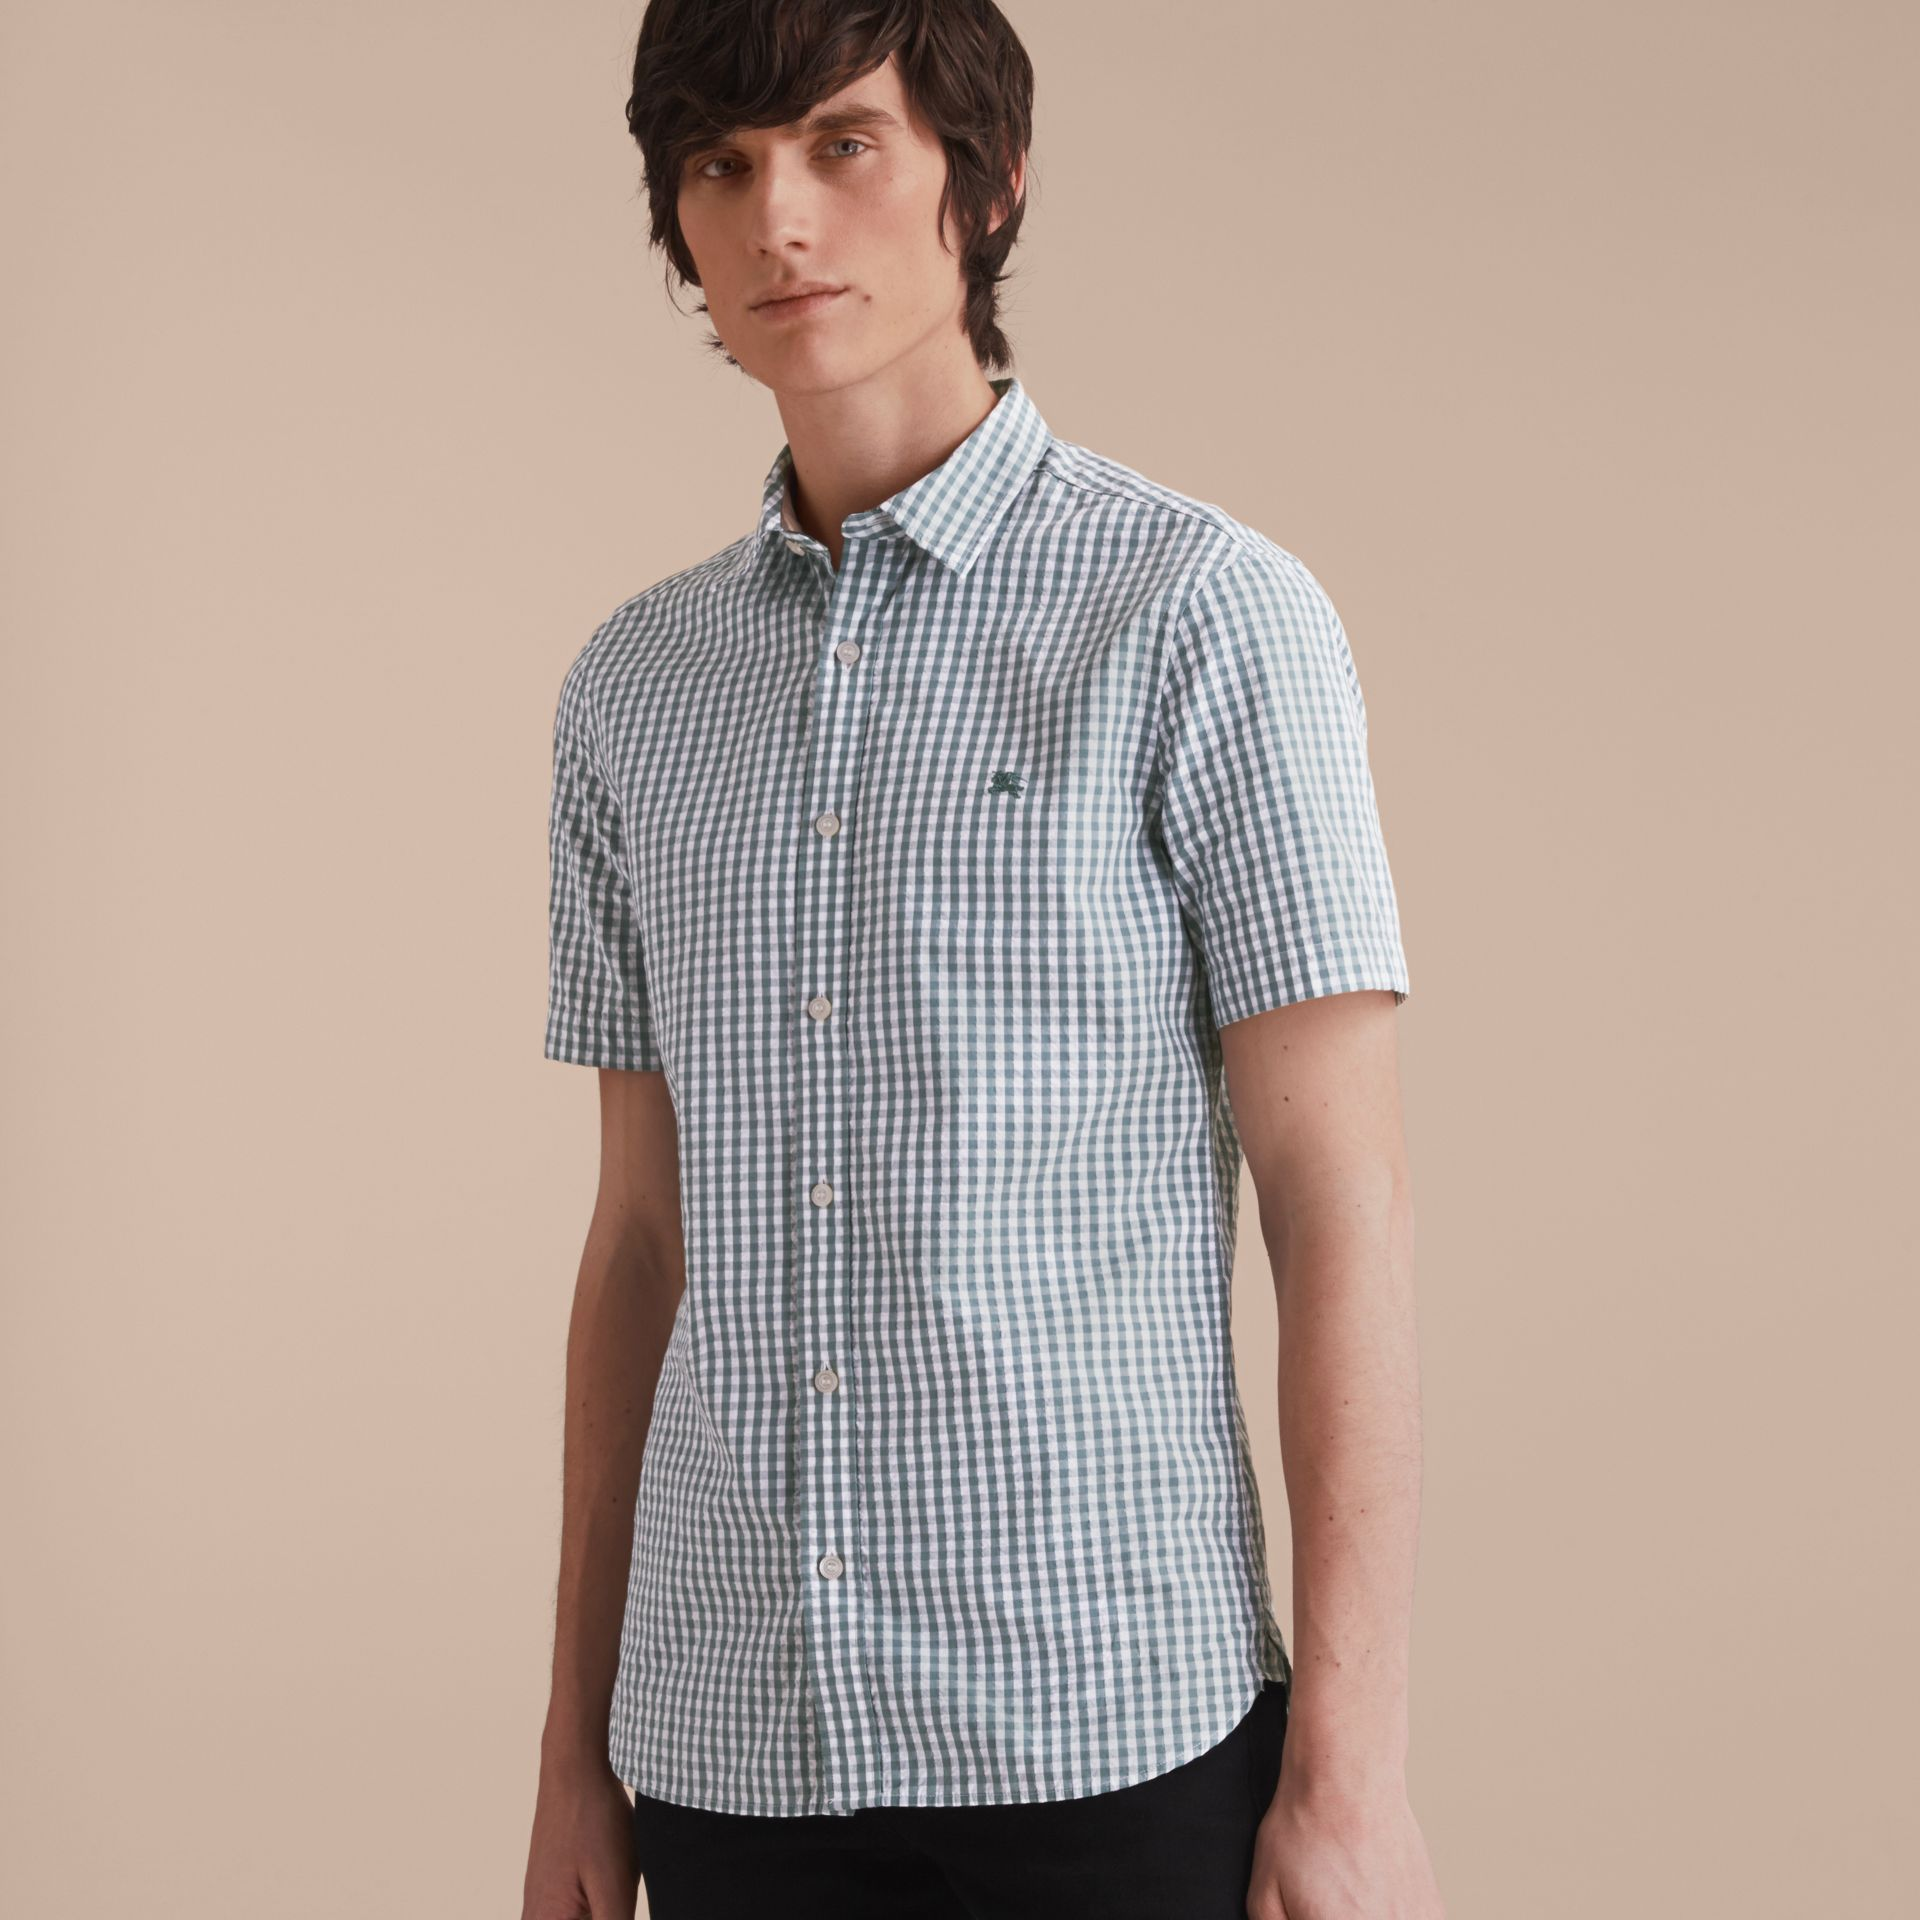 Short-sleeved Gingham Cotton Poplin Shirt in Dusty Teal Blue - Men | Burberry - gallery image 6